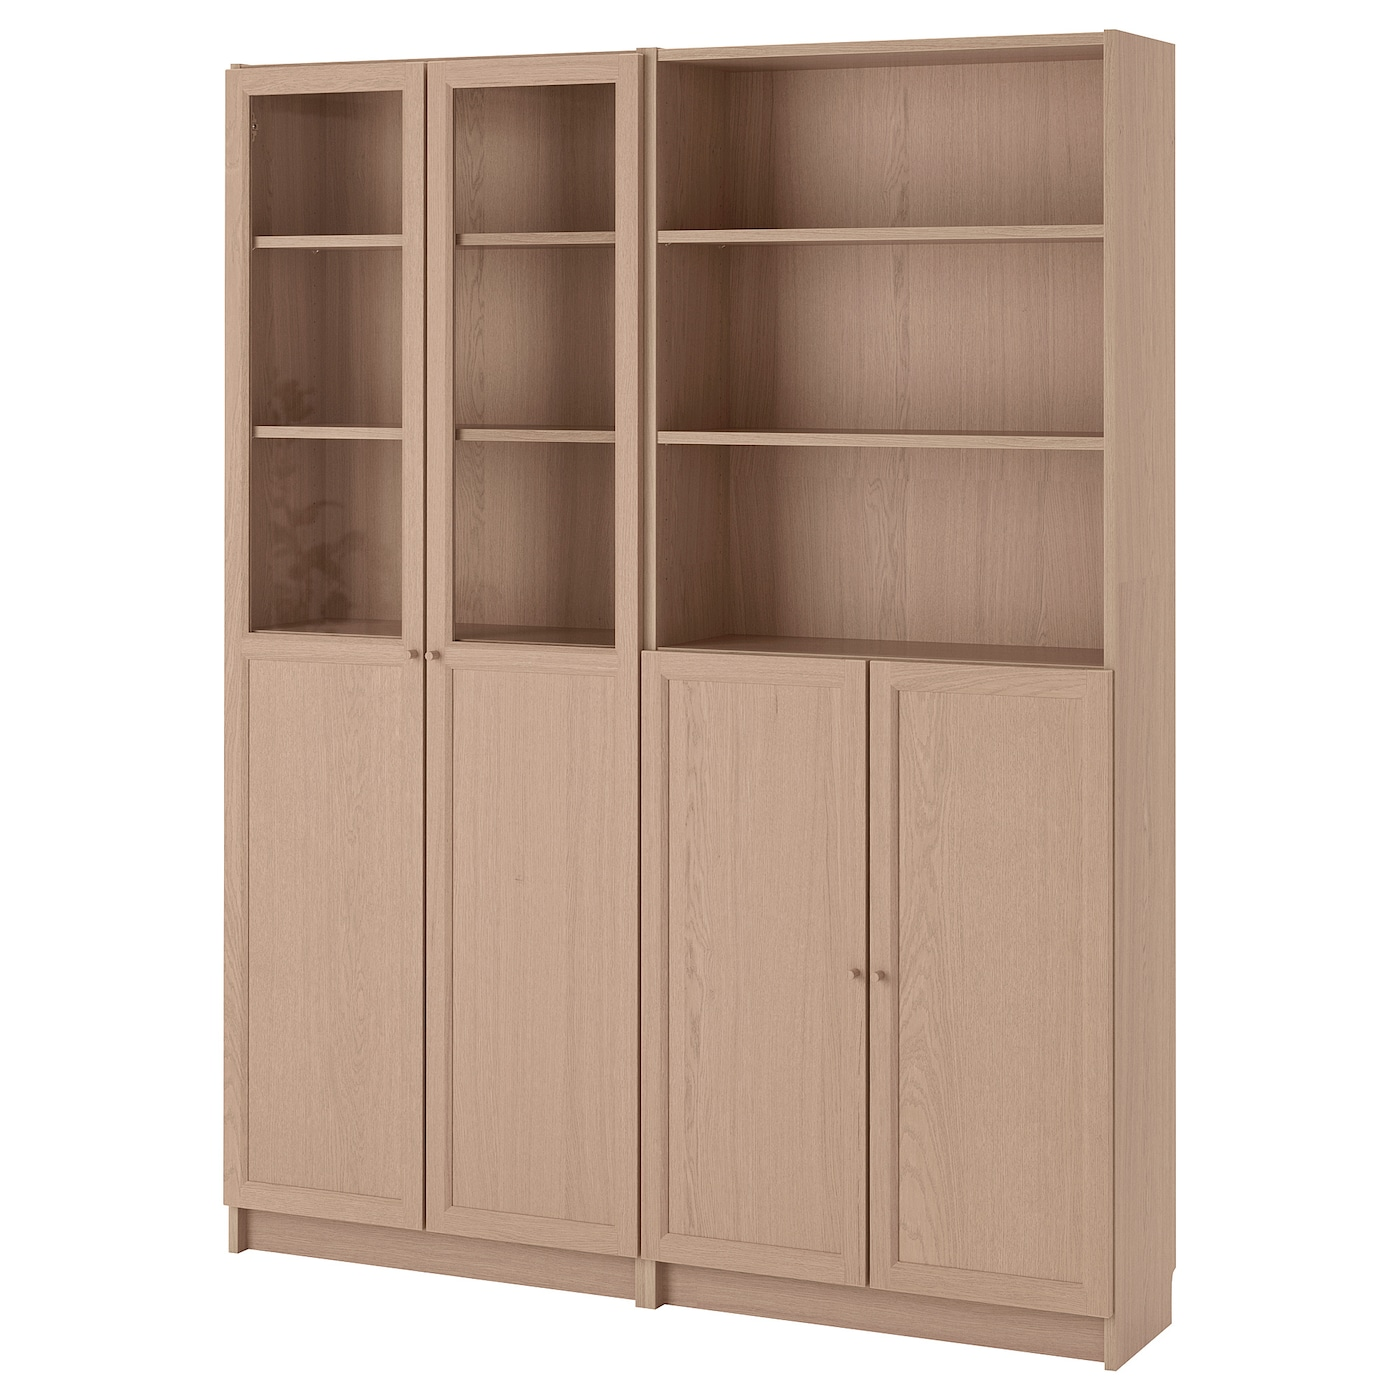 billy oxberg bookcase with panel glass doors white stained oak veneer 160 x 202 x 30 cm ikea. Black Bedroom Furniture Sets. Home Design Ideas